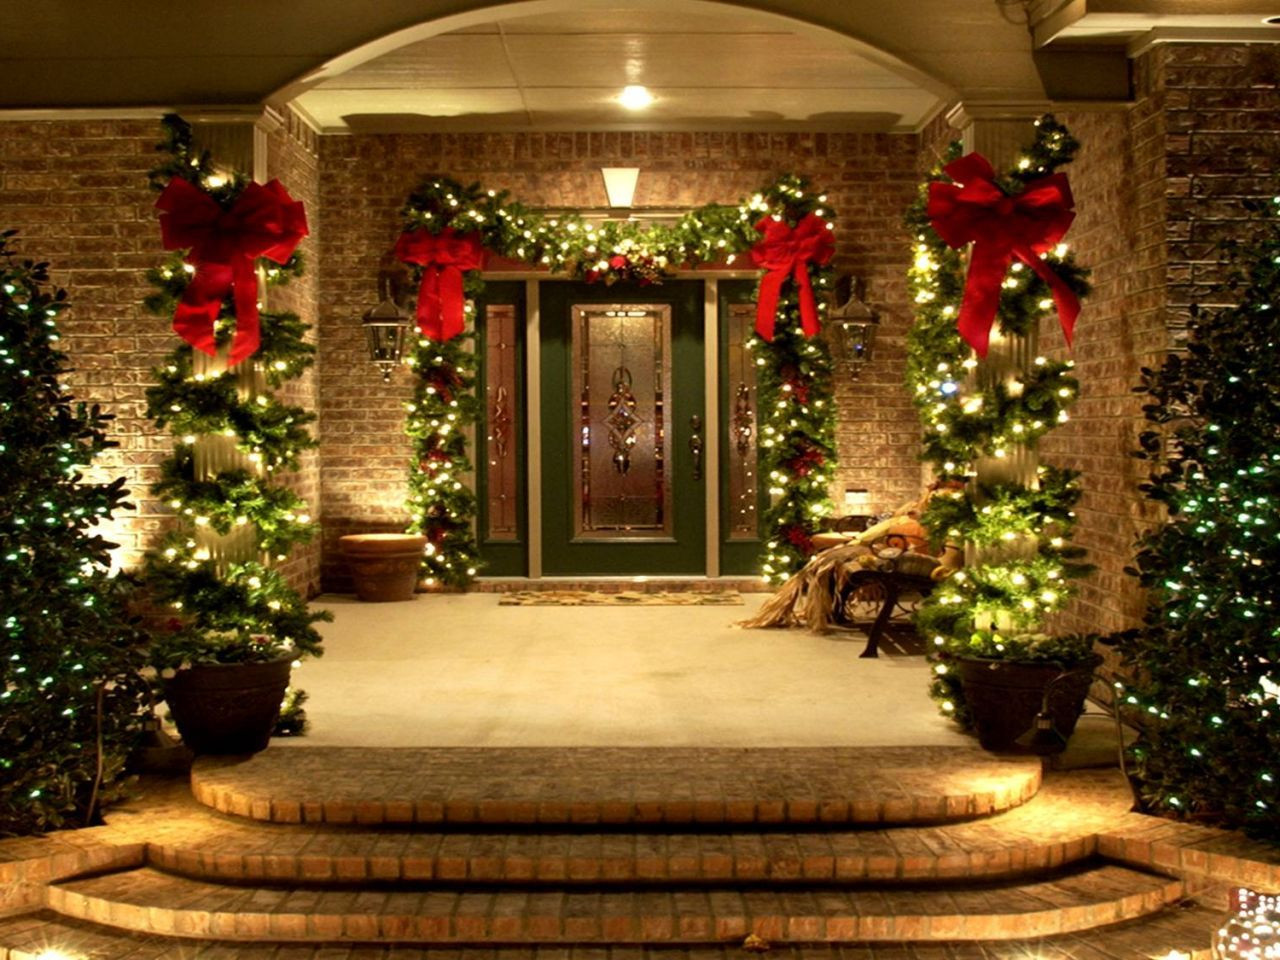 Best ideas about Outdoor Christmas Decor . Save or Pin Use of lighting and decorative plants to the outdoor for Now.